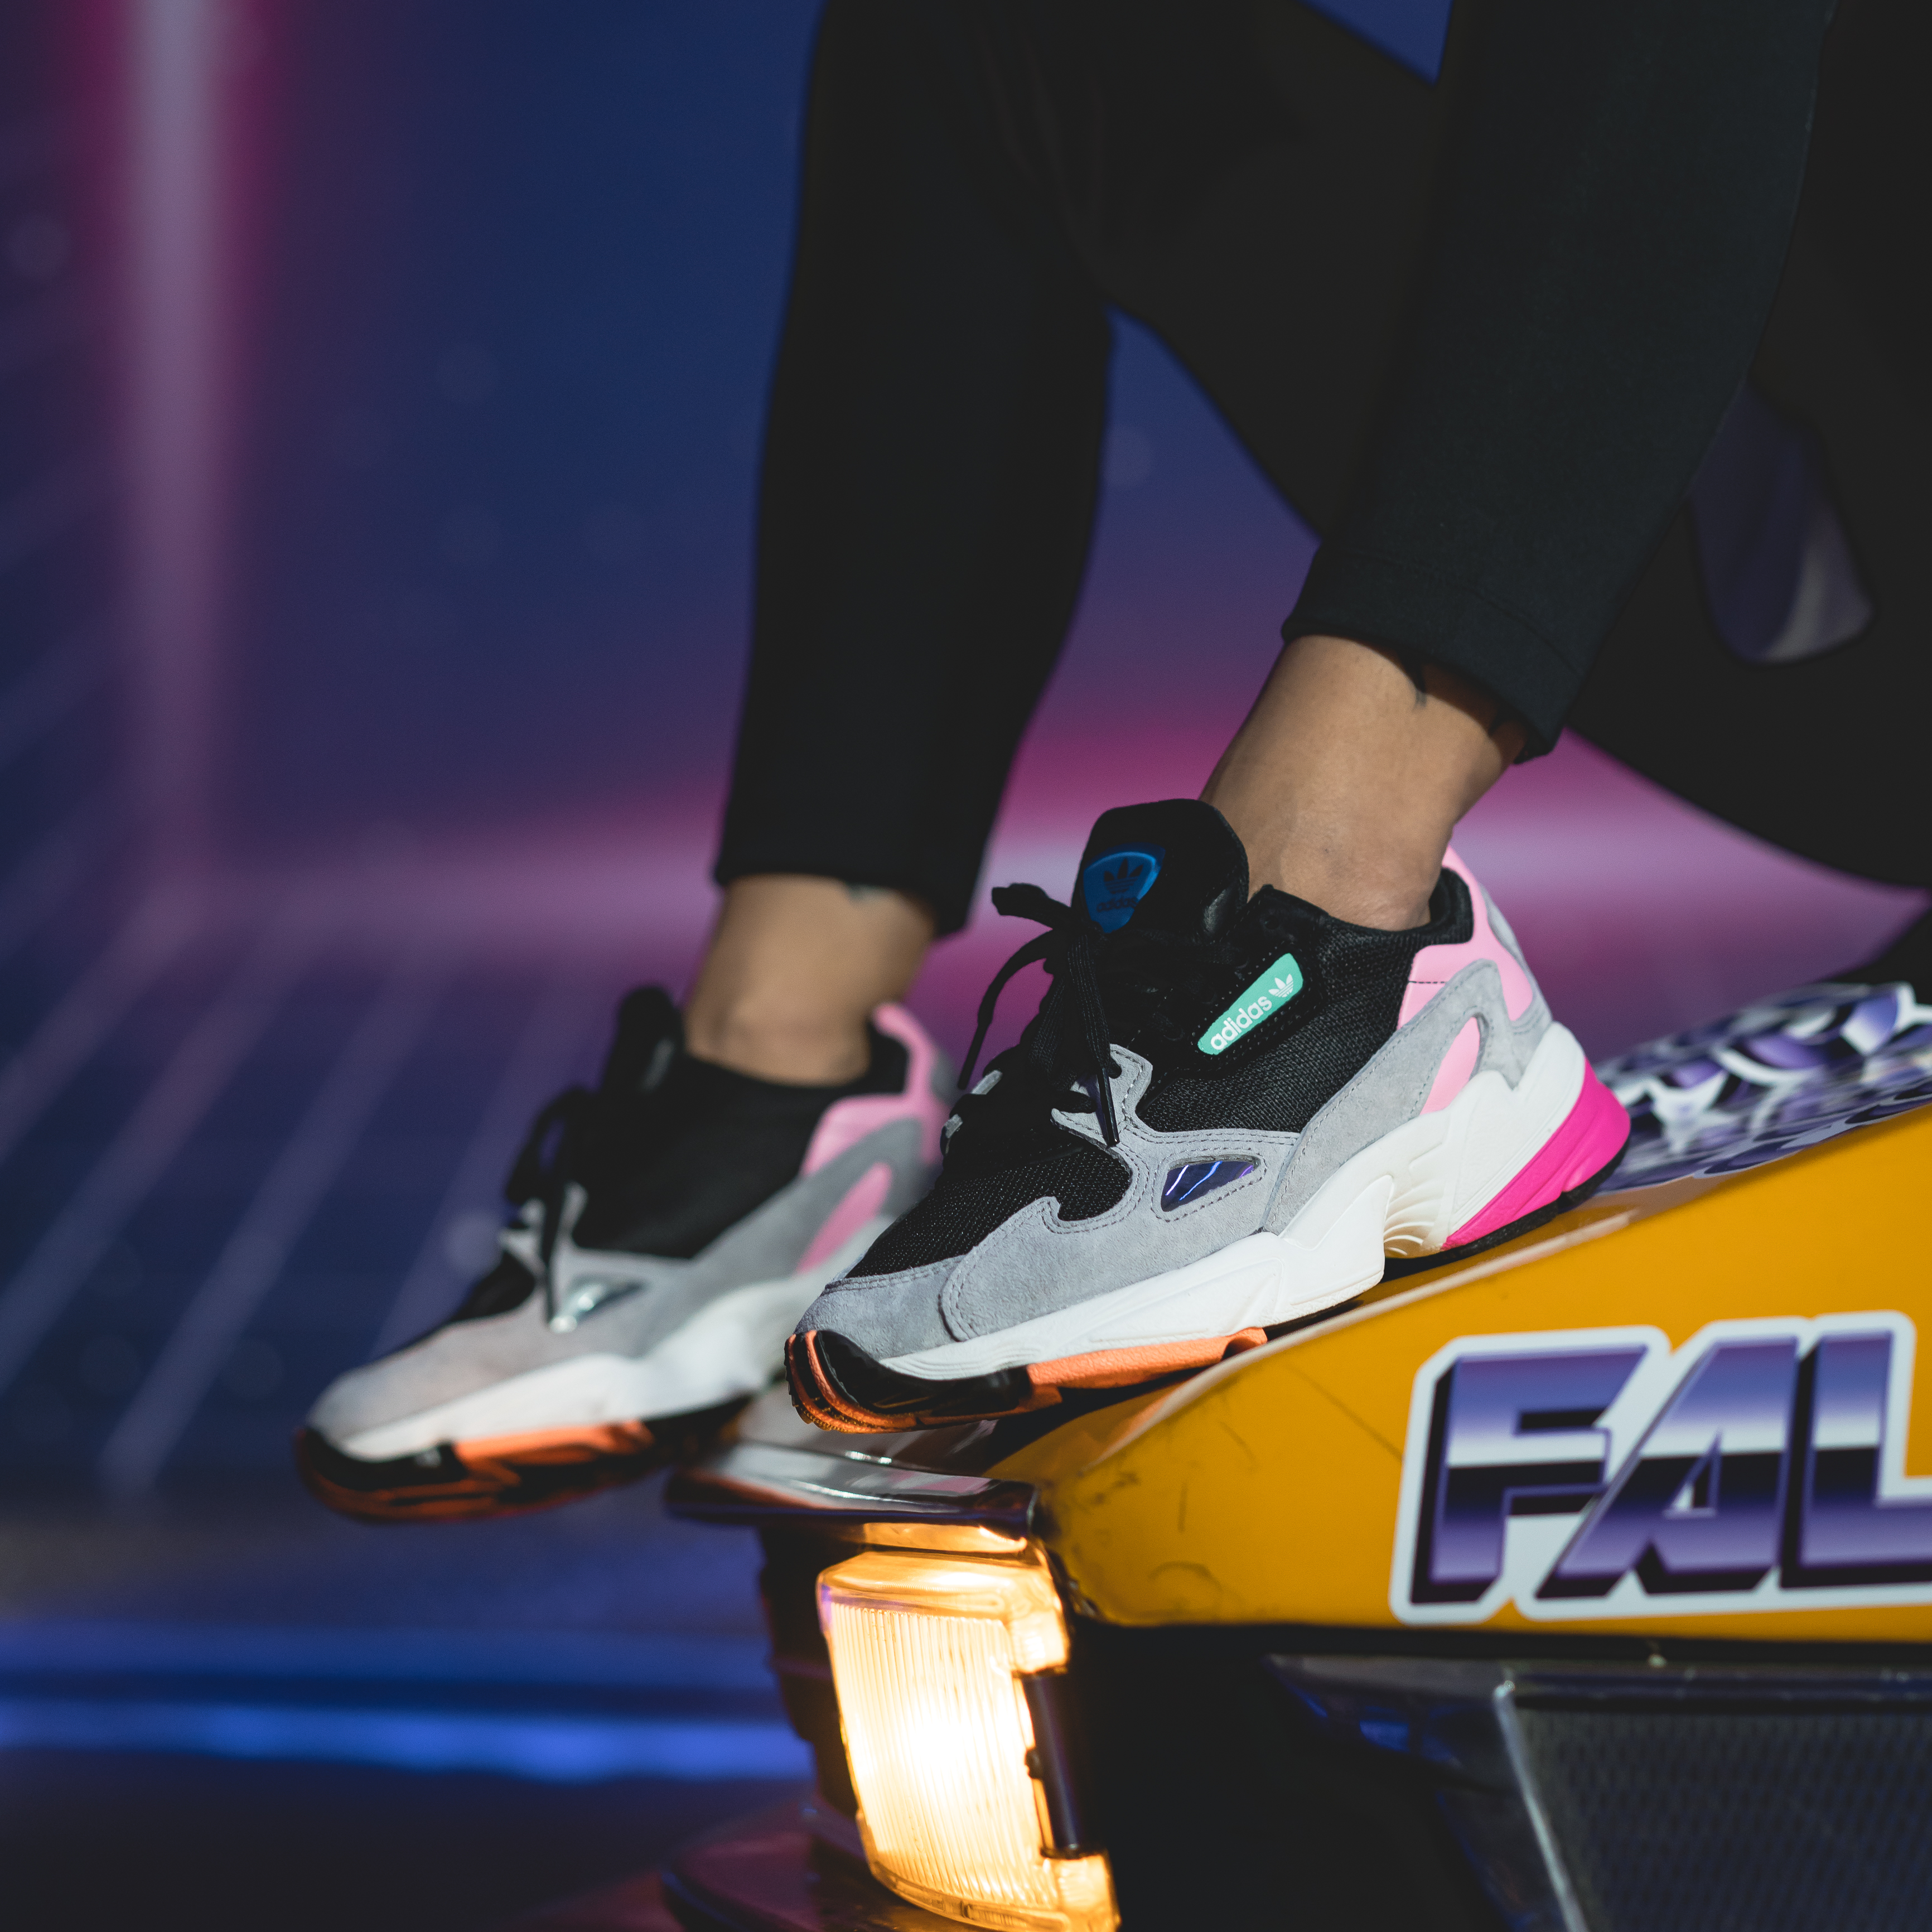 sports shoes 5de2f d9dbd The adidas Originals Falcon is set to release on 02.06.18 so stay tuned for  more info throughout the week.